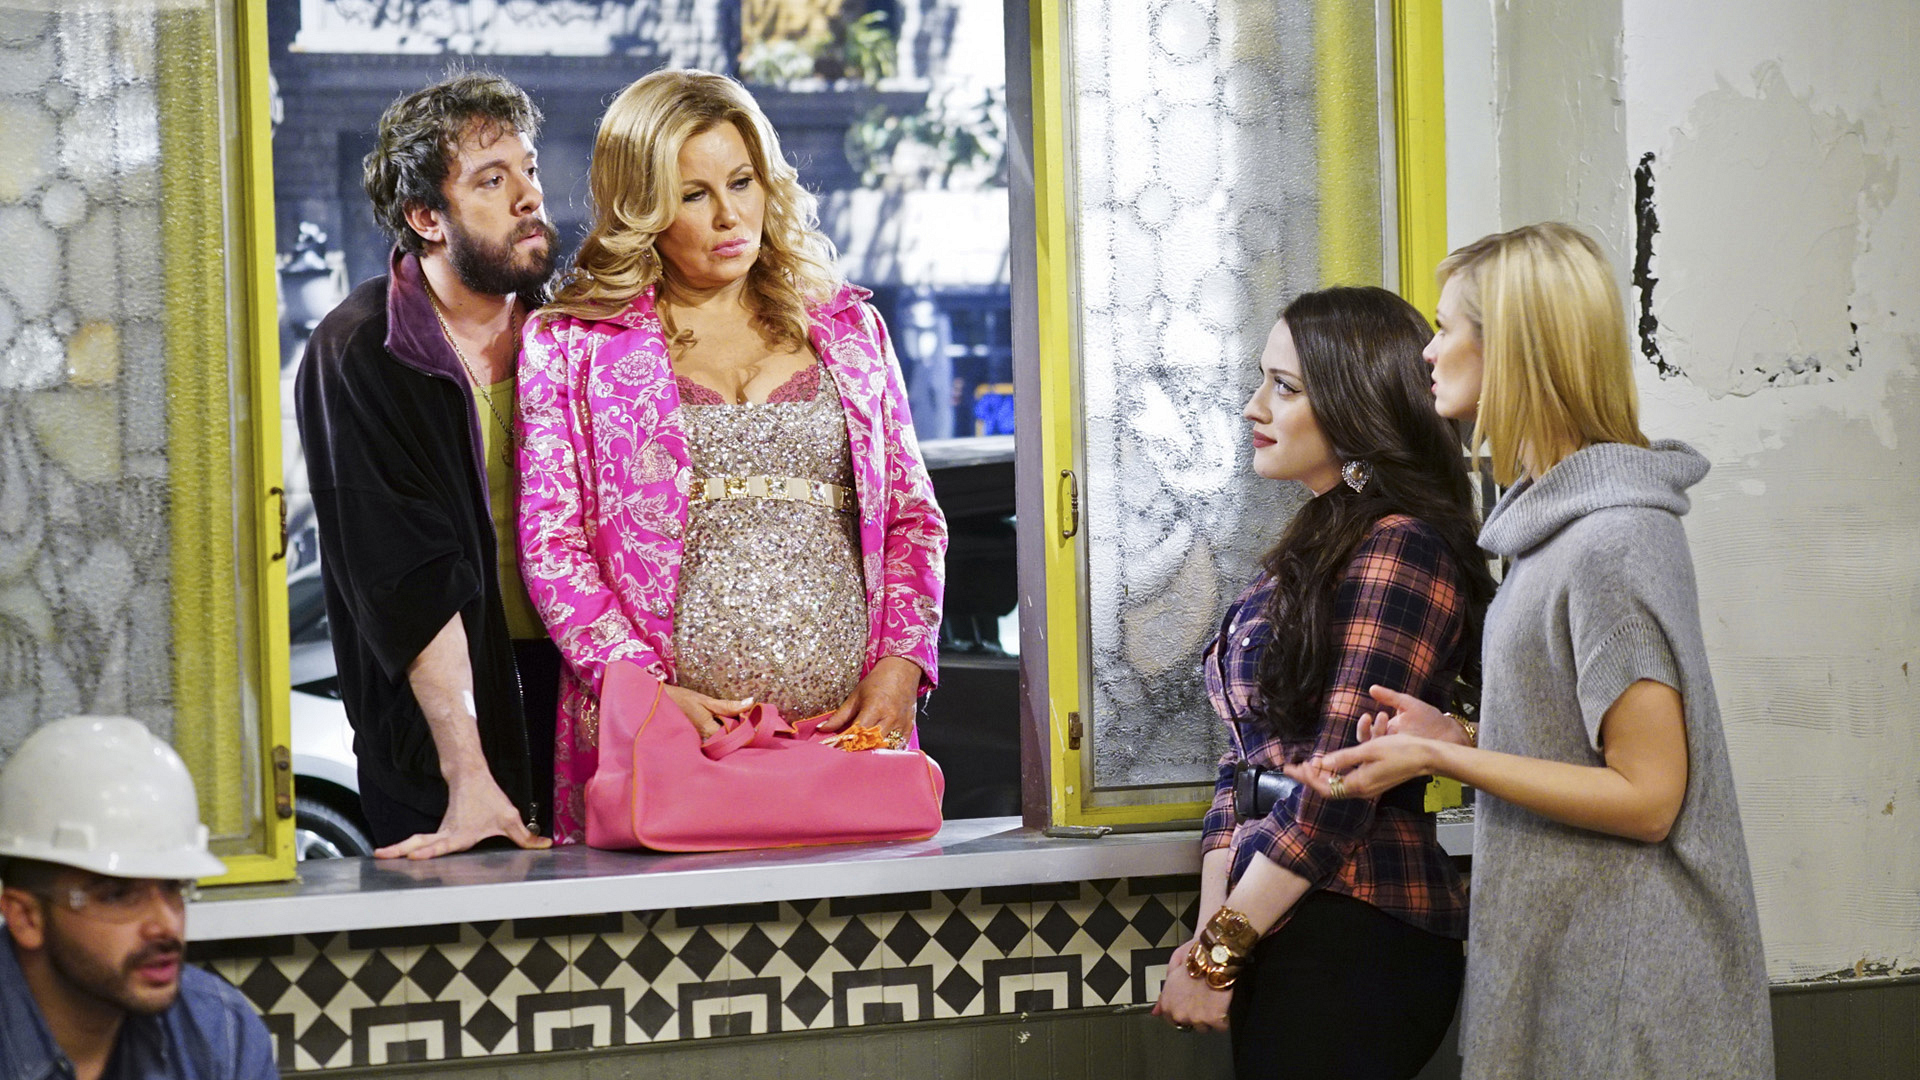 Sophie and Oleg learned they are expecting a child together on 2 Broke Girls.